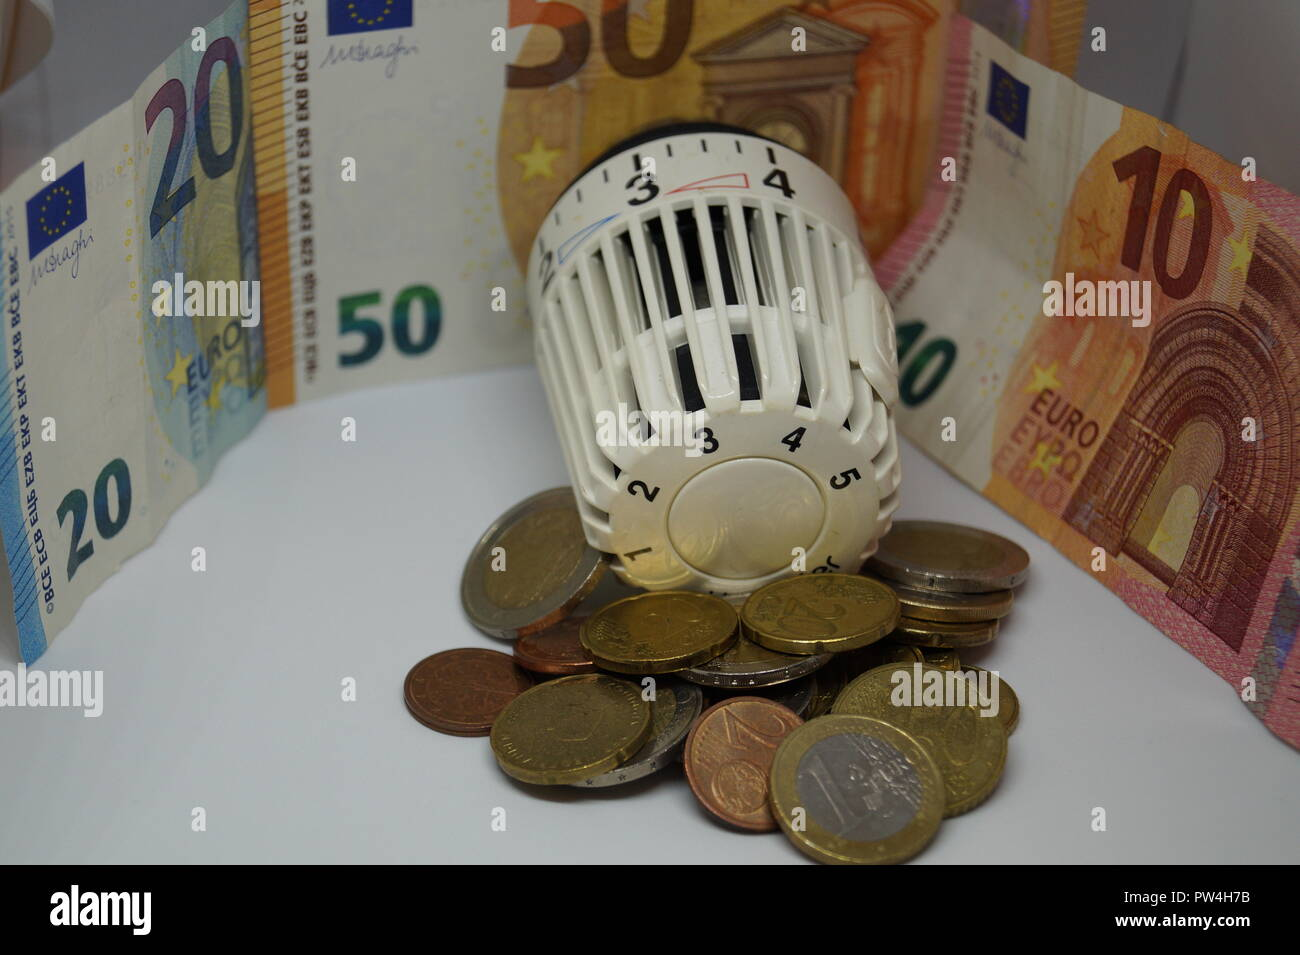 heating costs / energy costs - Stock Image